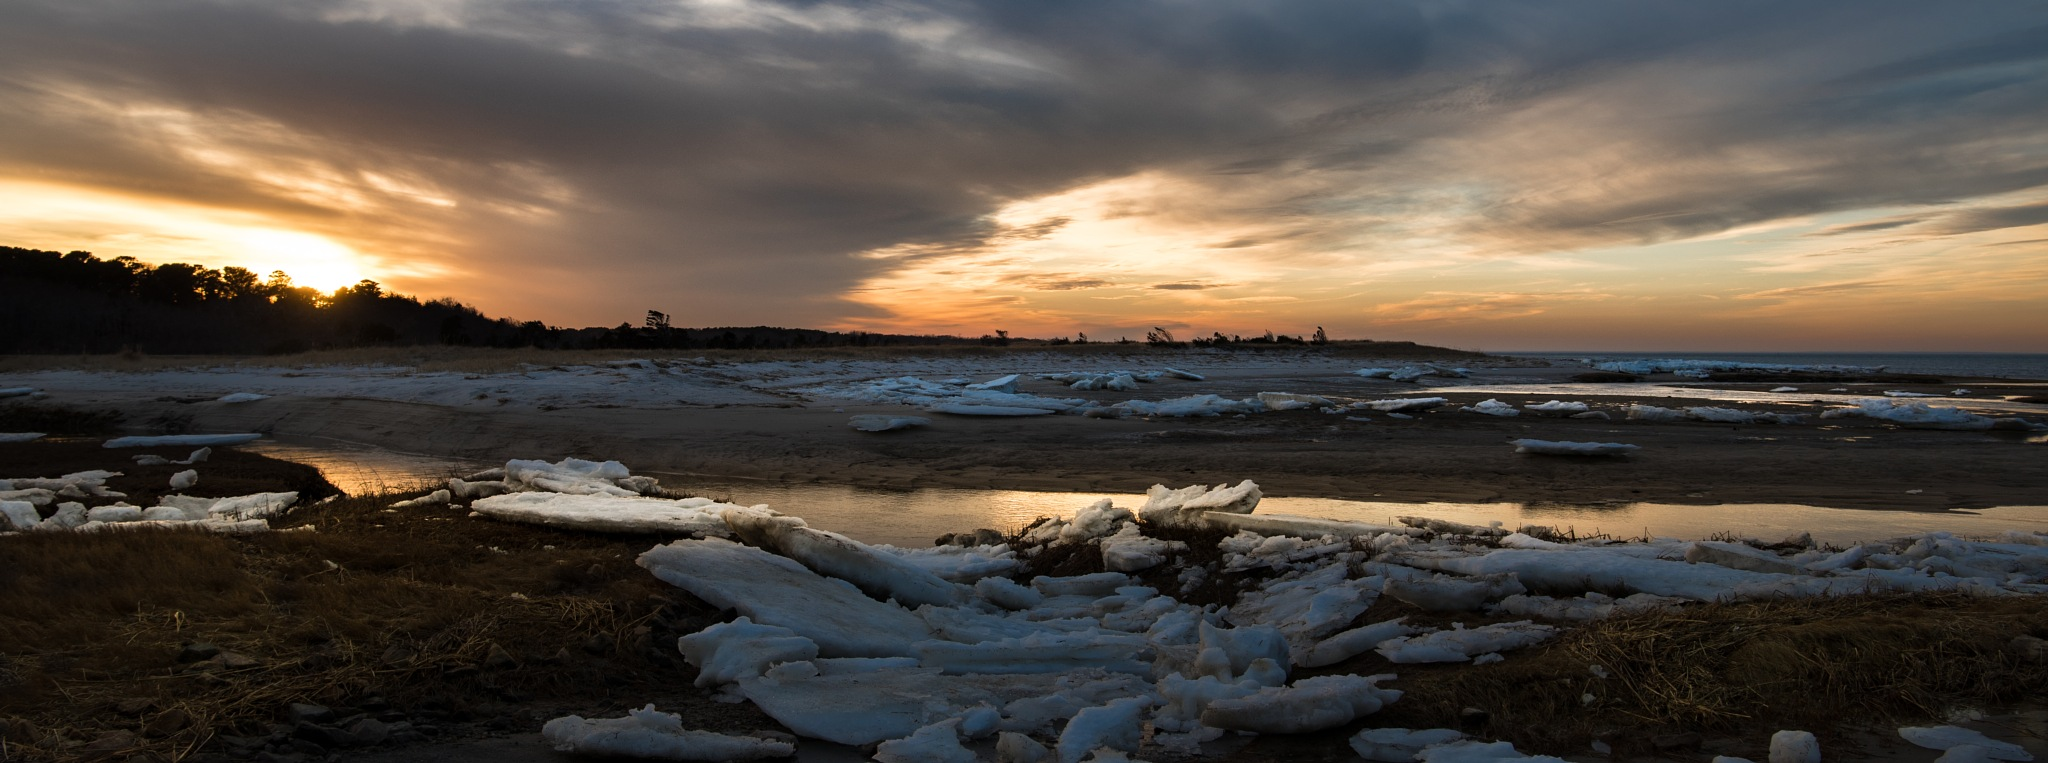 Last of the snow by Todd Hyde